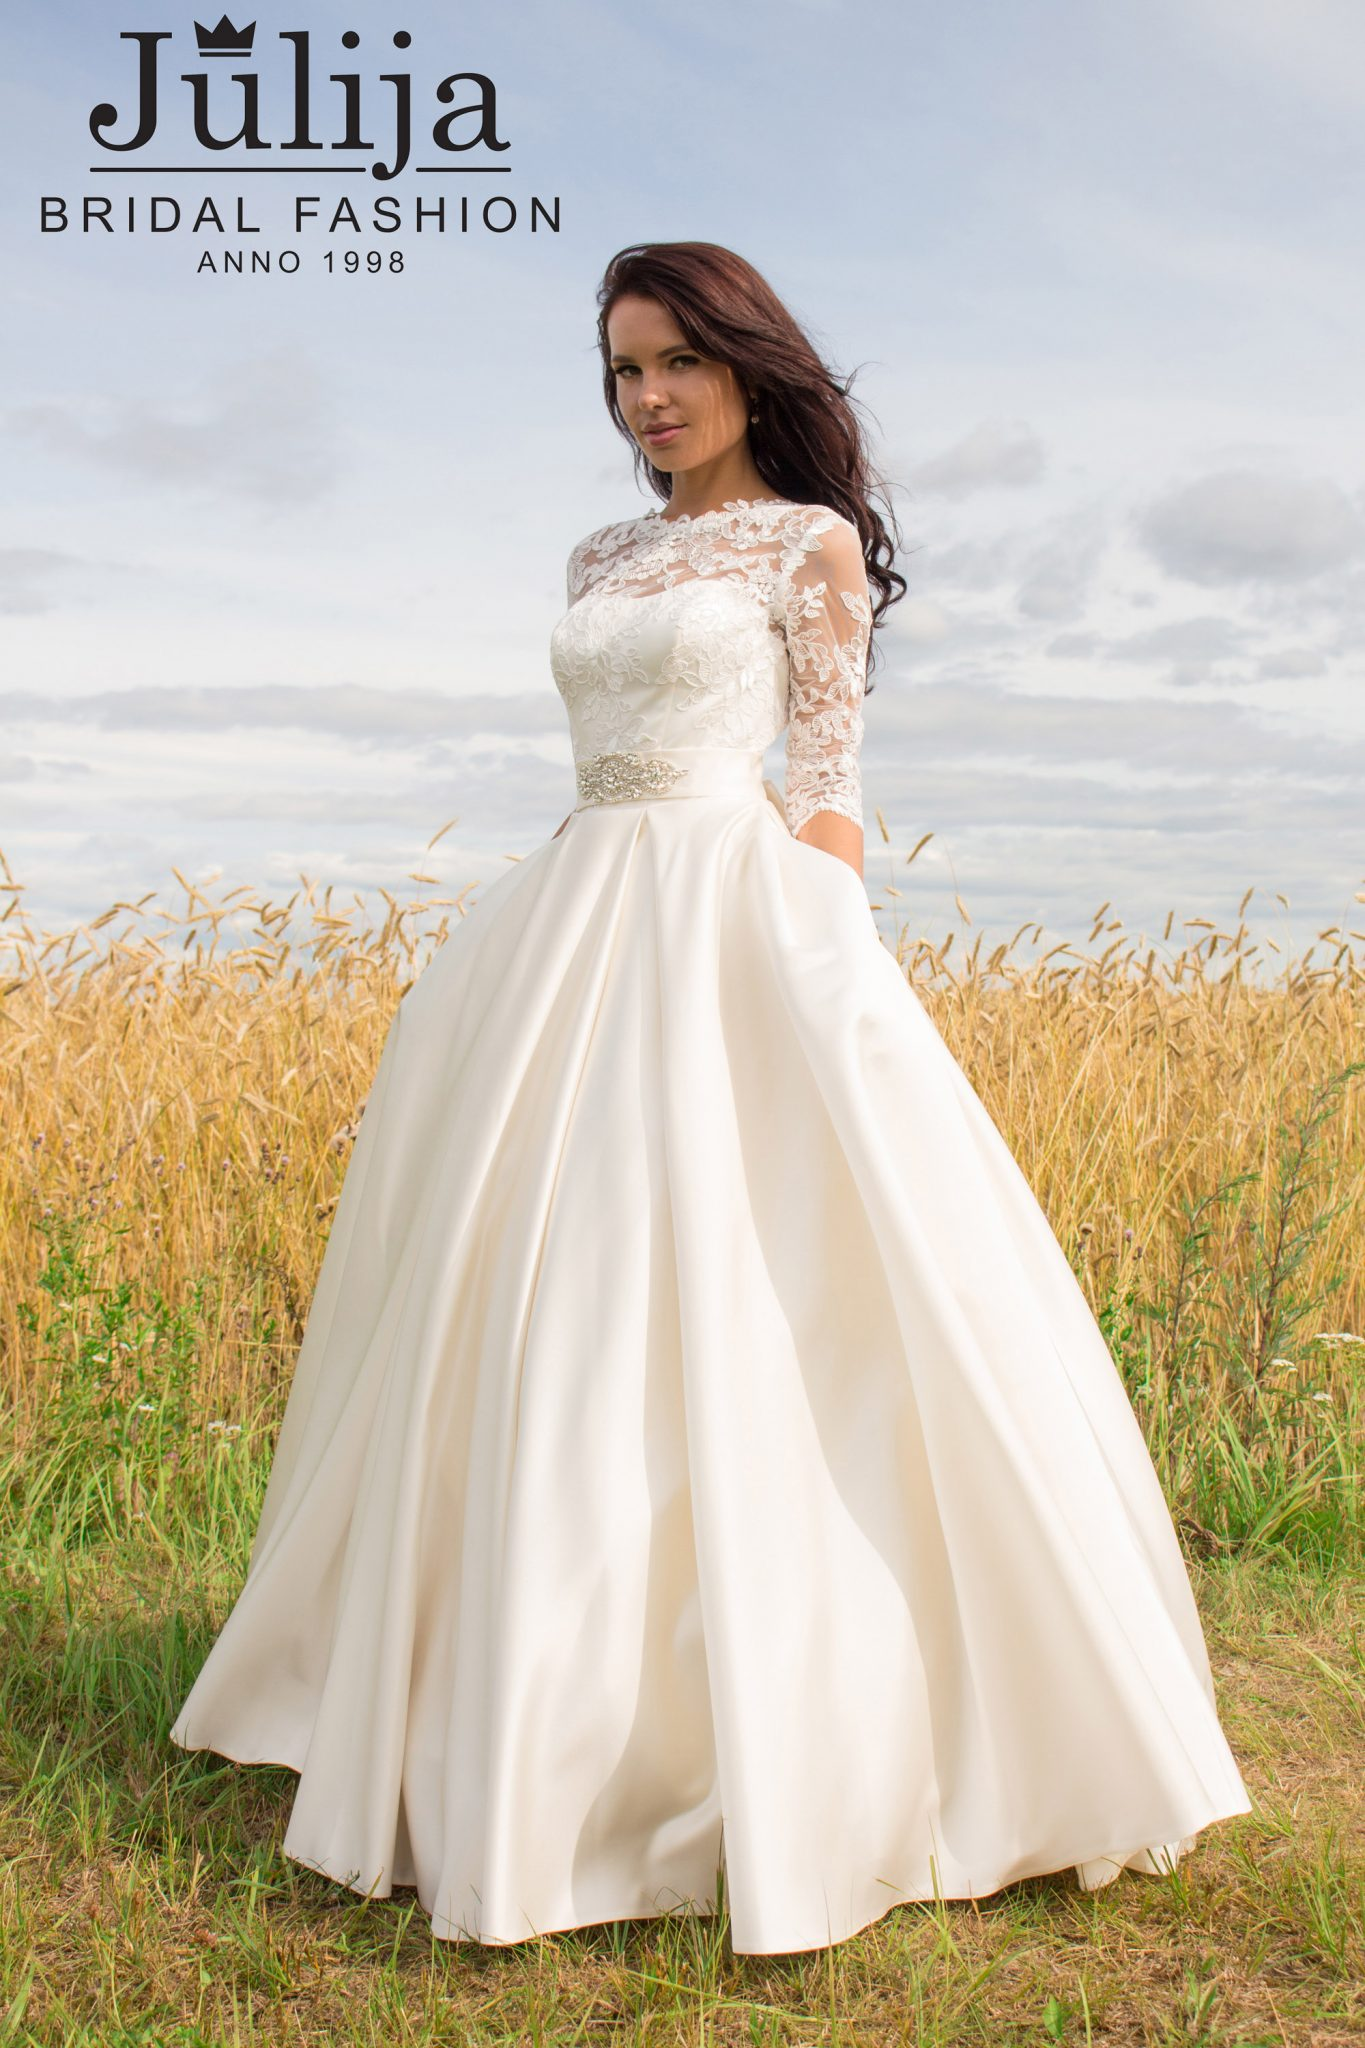 Louisiana | Wholesale wedding dresses - Julija Bridal Fashion